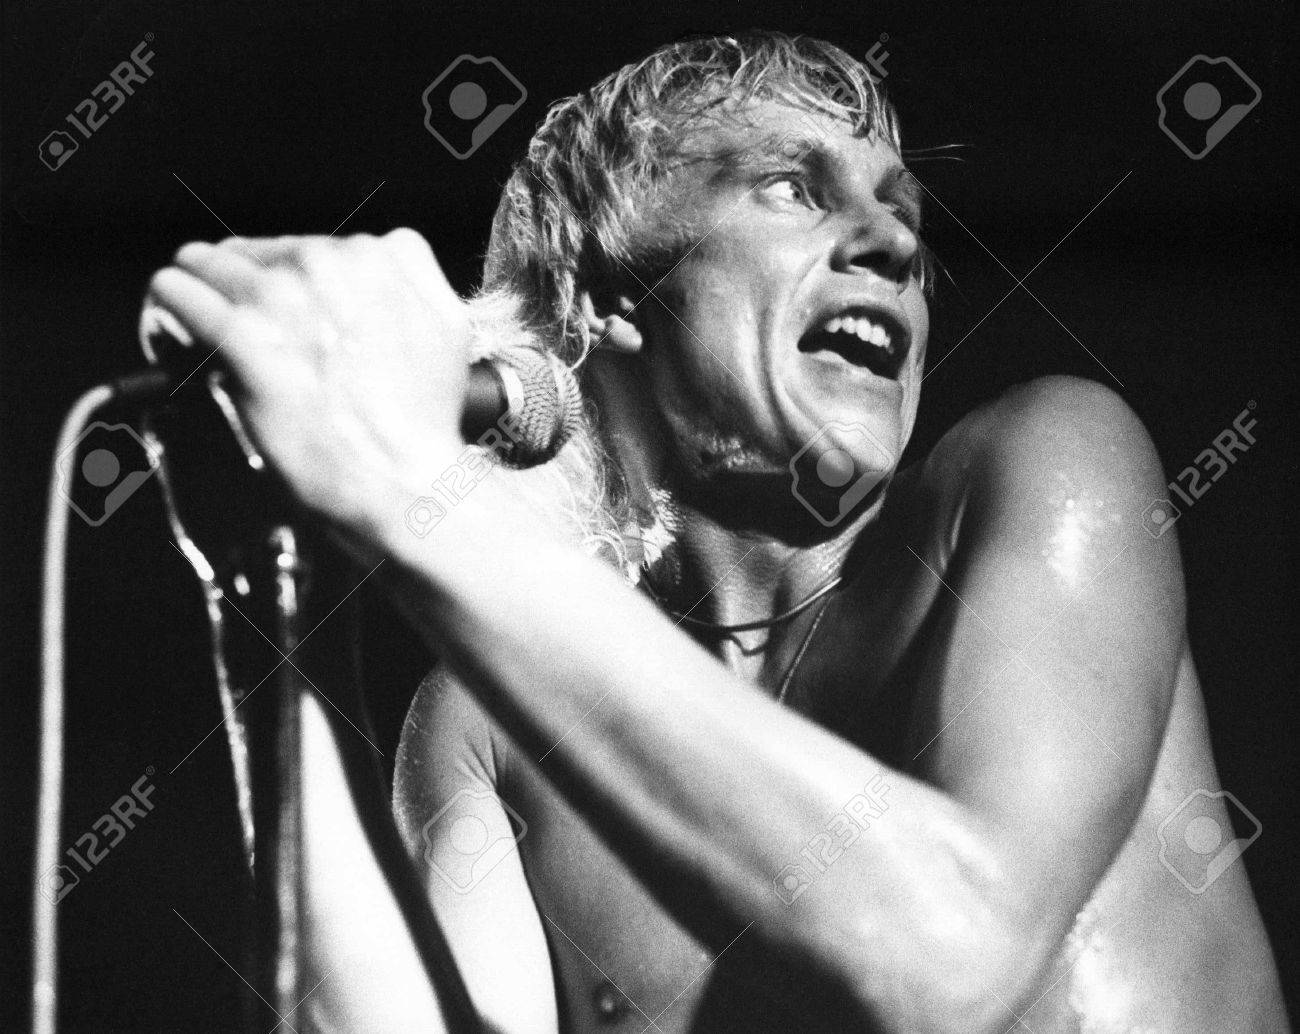 London, England - July 21, 1978 - Andy Ellison, lead singer of British pop group Radio Stars, performs live on stage. Stock Photo - 6890634